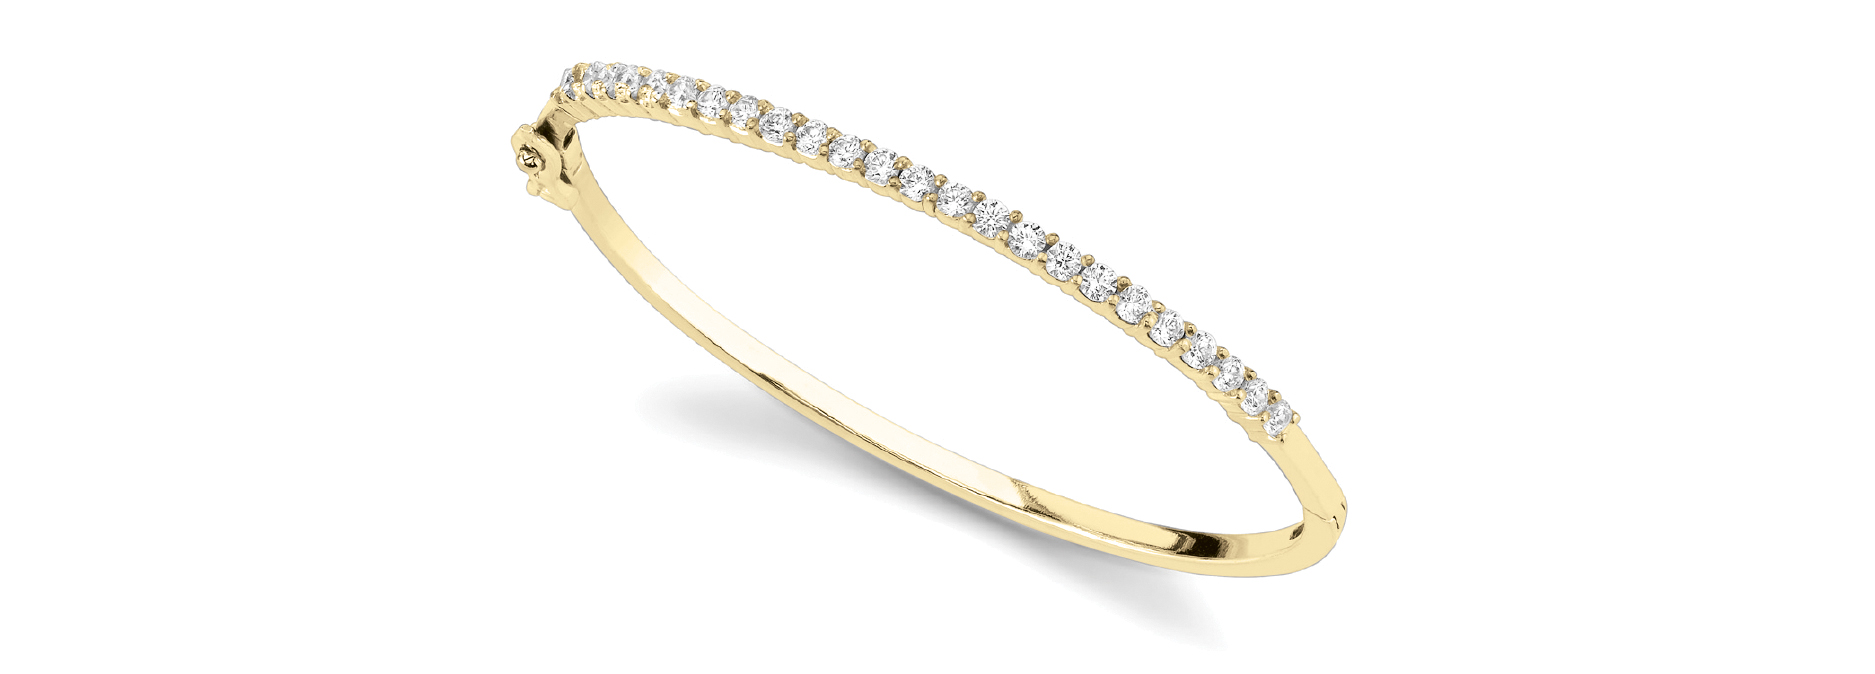 1.44 Carat Round Diamond Bangle in Yellow Gold